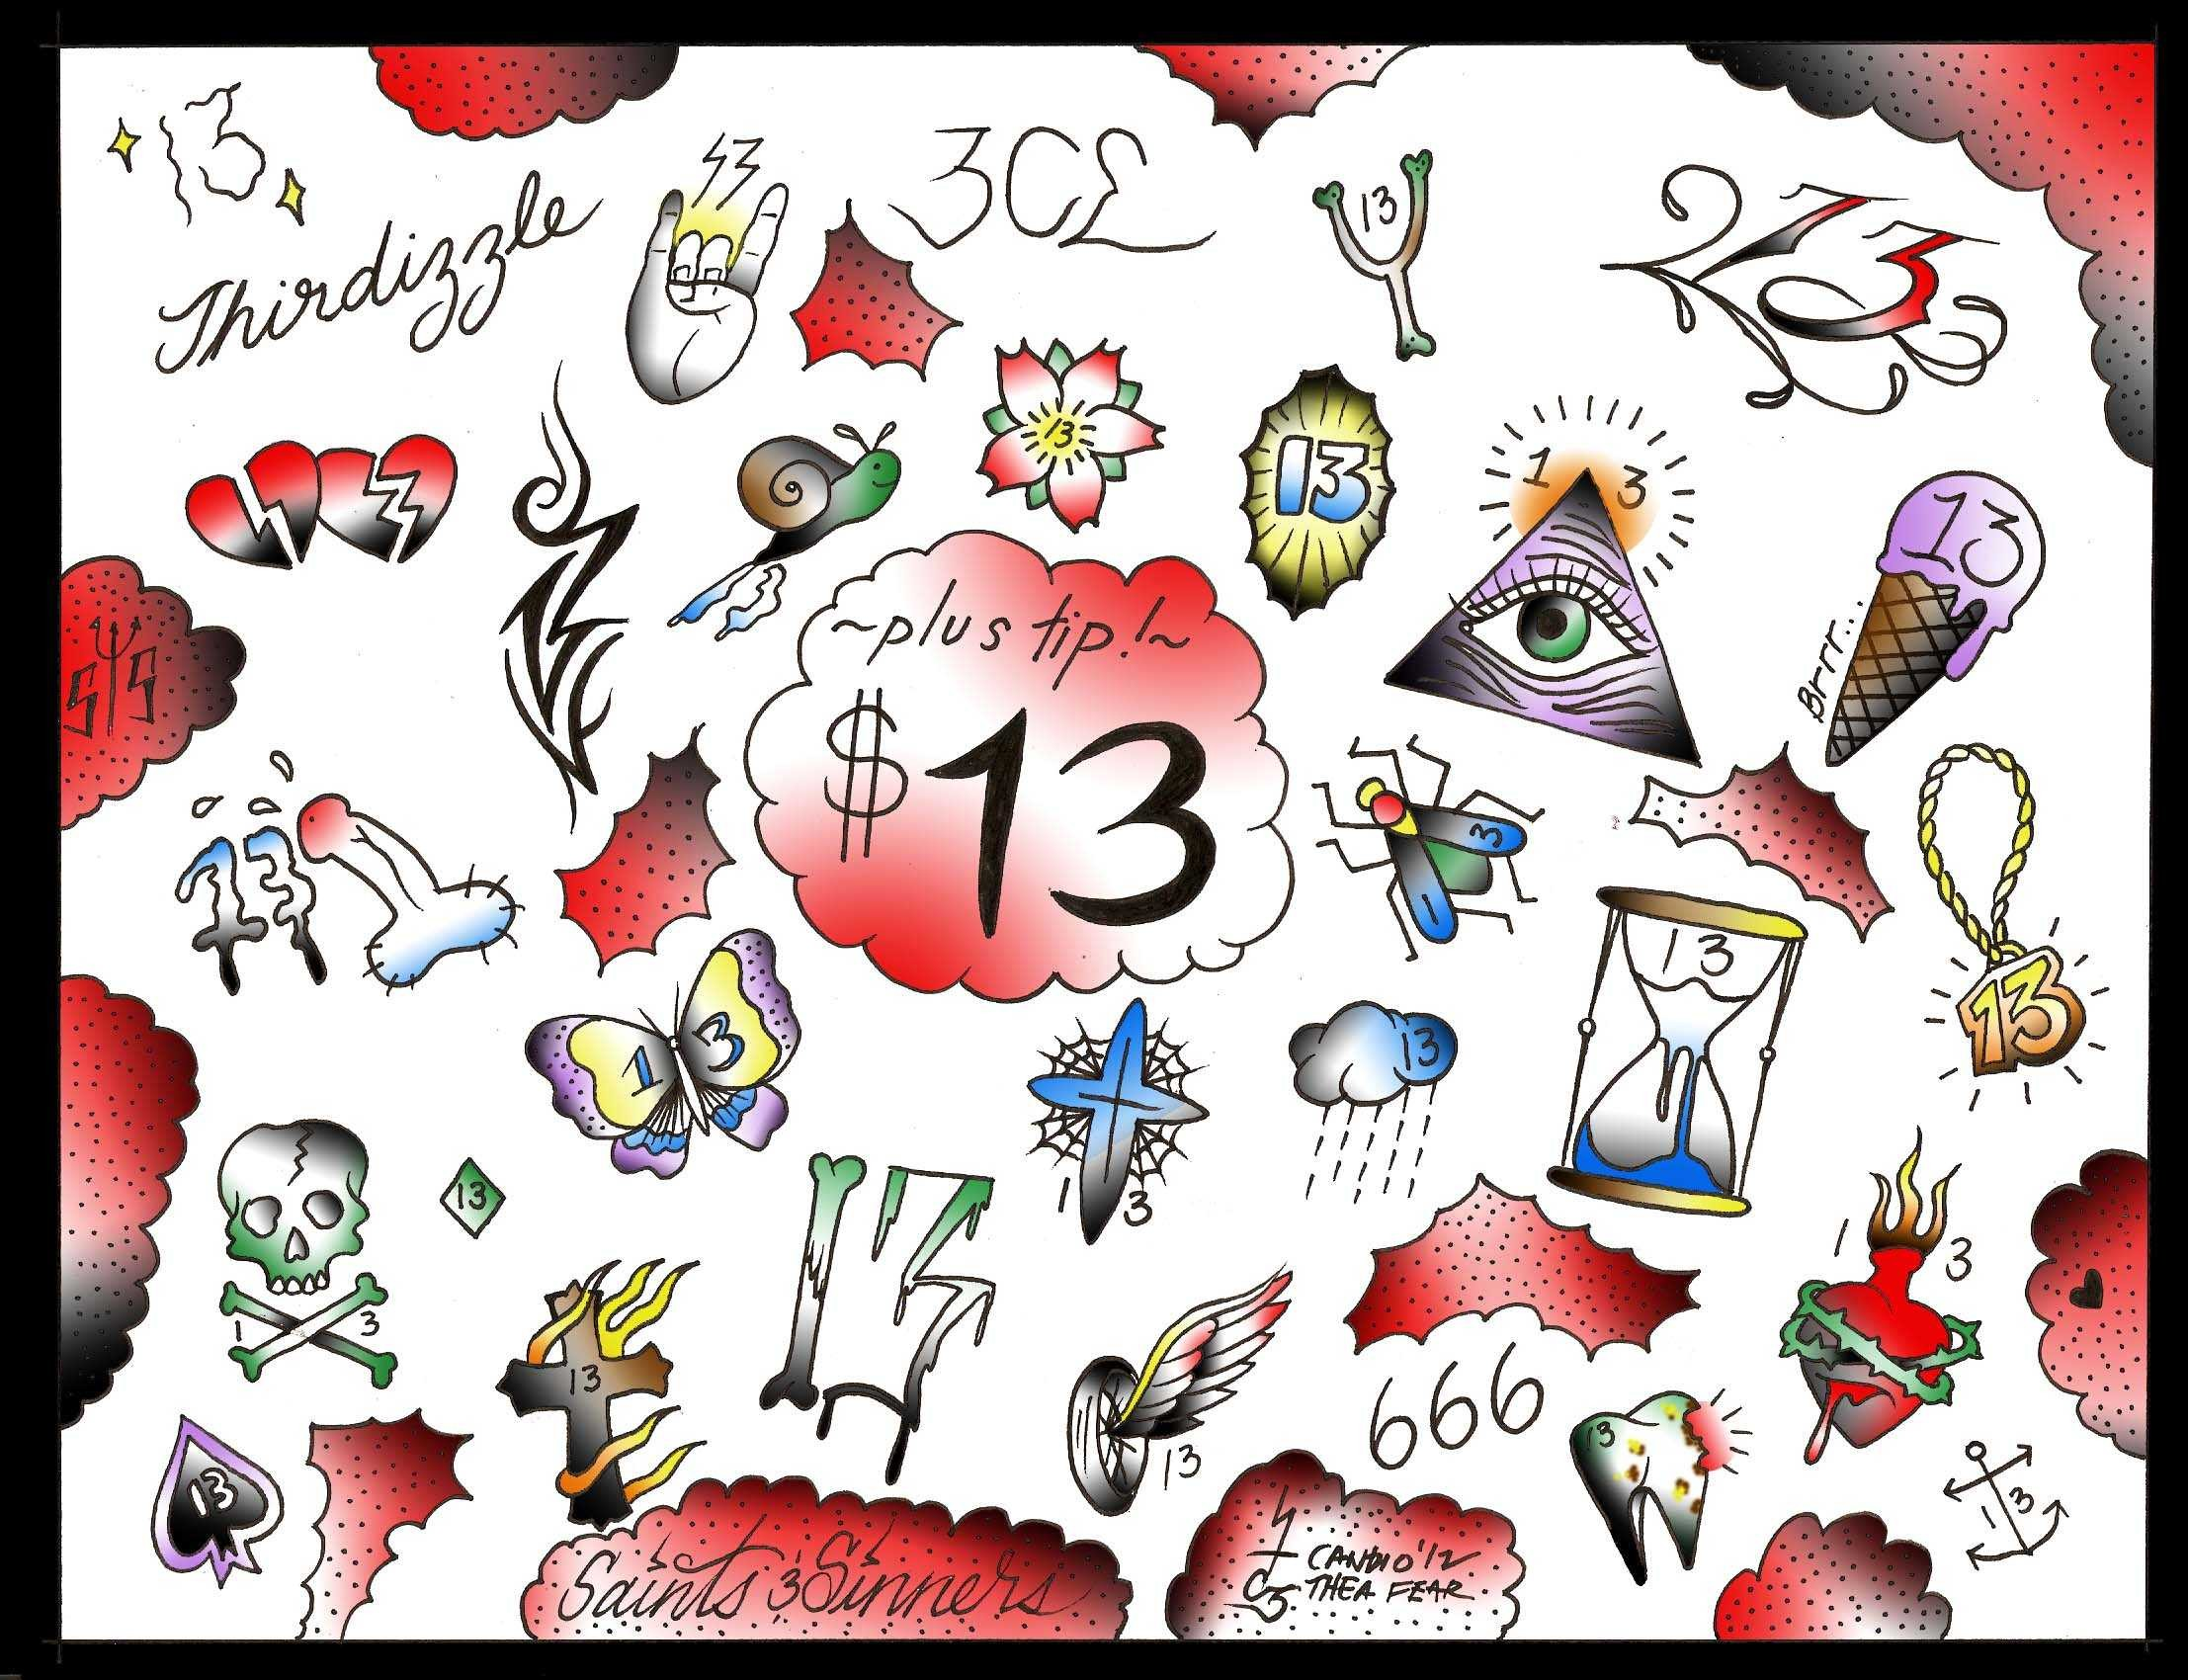 2214x1700 friday the 13th tattoos dallas - http://hdwallpaper.info/friday-